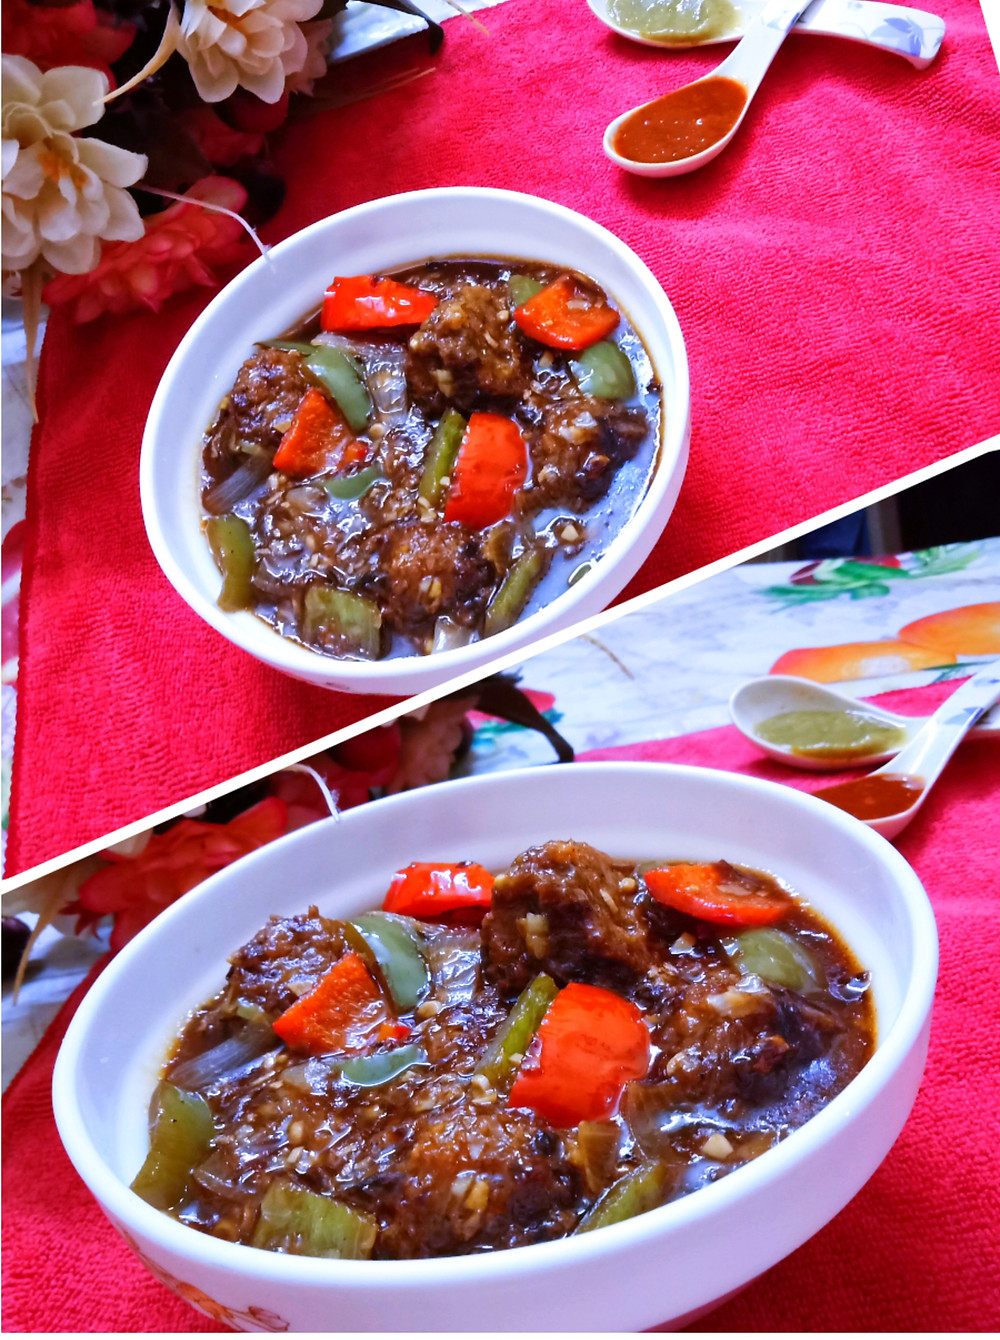 Gobi Manchurian or Veg Manchurian is an Chinese Indian fried cauliflower dish. Gobi Manchurian is the result of the adaptation of Chinese cooking and seasoning techniques to suit Indian tastes and has become a staple of Indian Chinese cuisine. The word Manchurian means native or inhabitant of Manchuria. There are two different variants of gobi Manchurian, dry and with gravy. Both variants are prepared by using common ingredients.